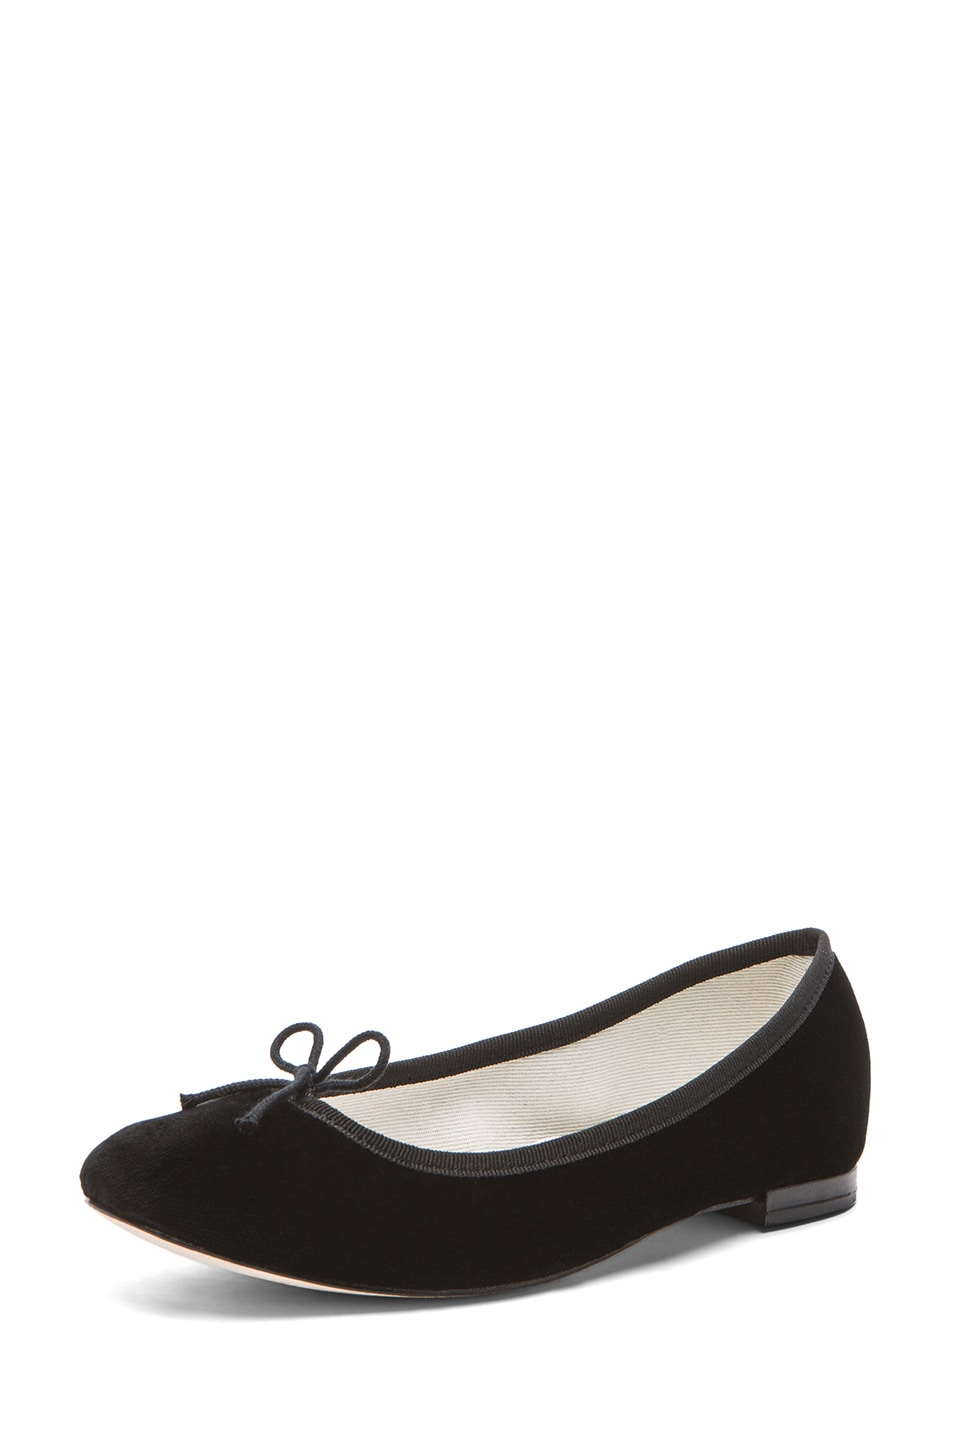 Image 2 of Repetto Velour Flats in Black